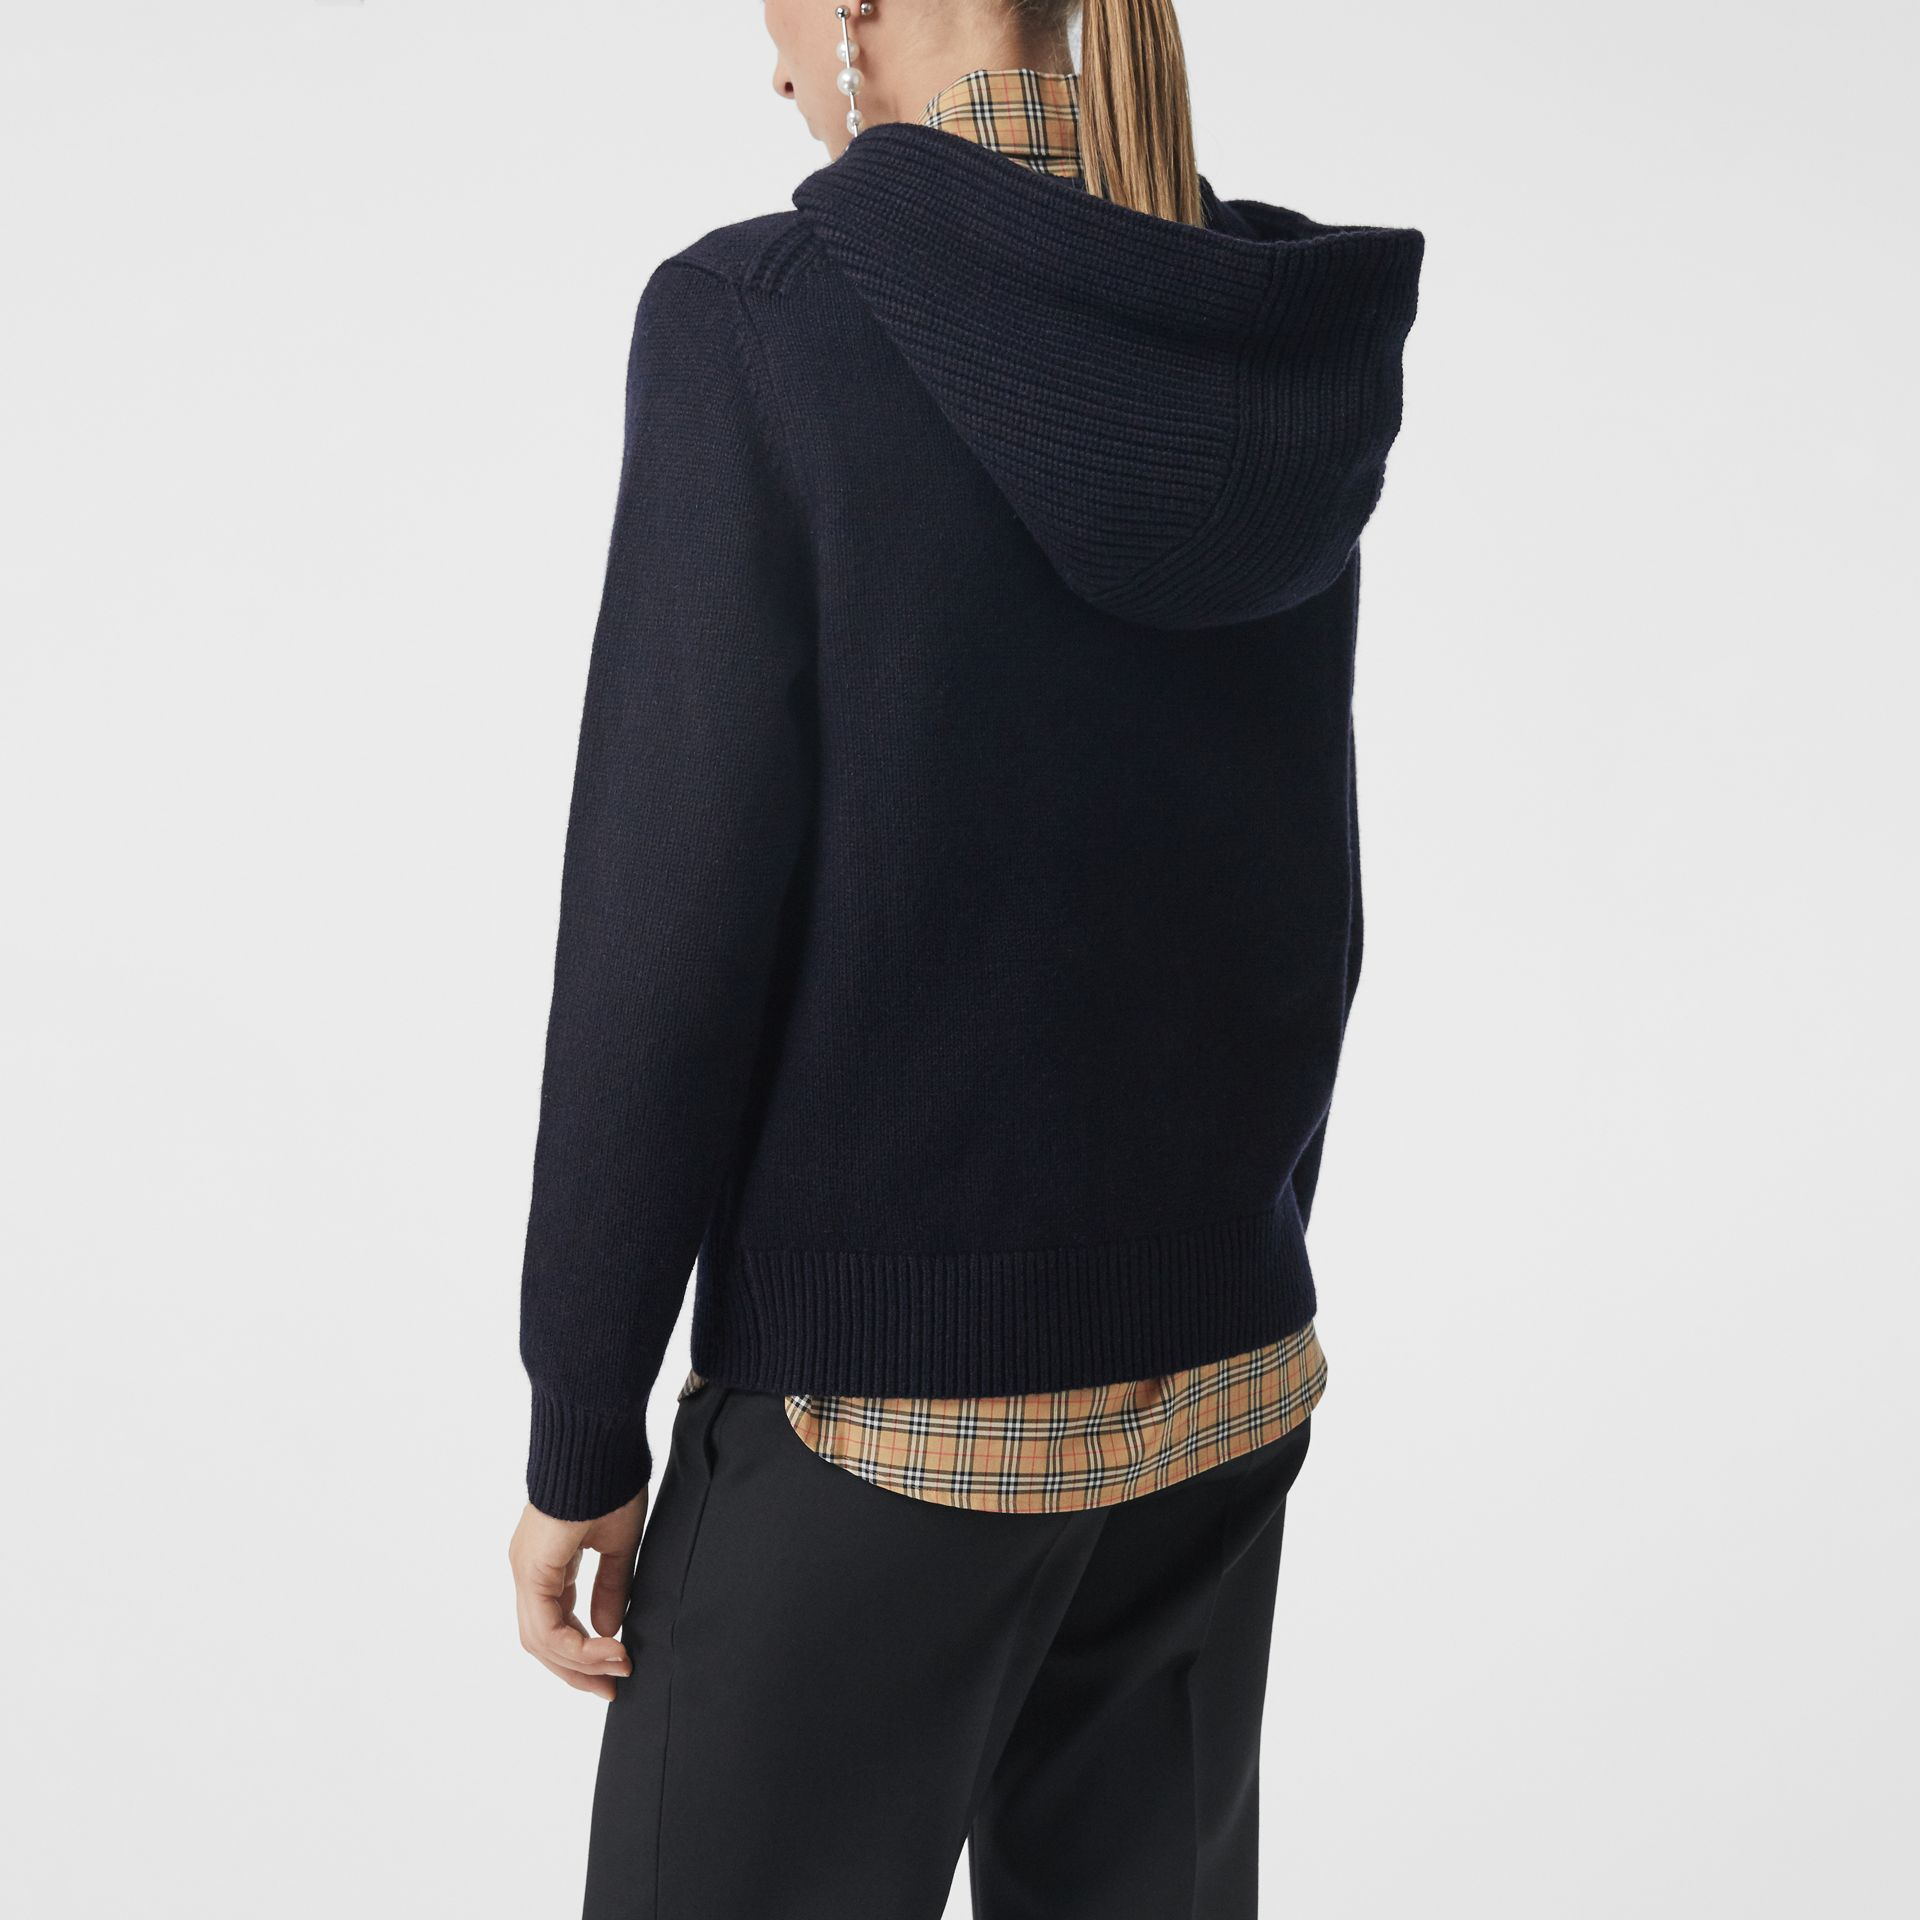 Embroidered Archive Logo Cashmere Hooded Top in Navy - Women | Burberry Singapore - gallery image 2